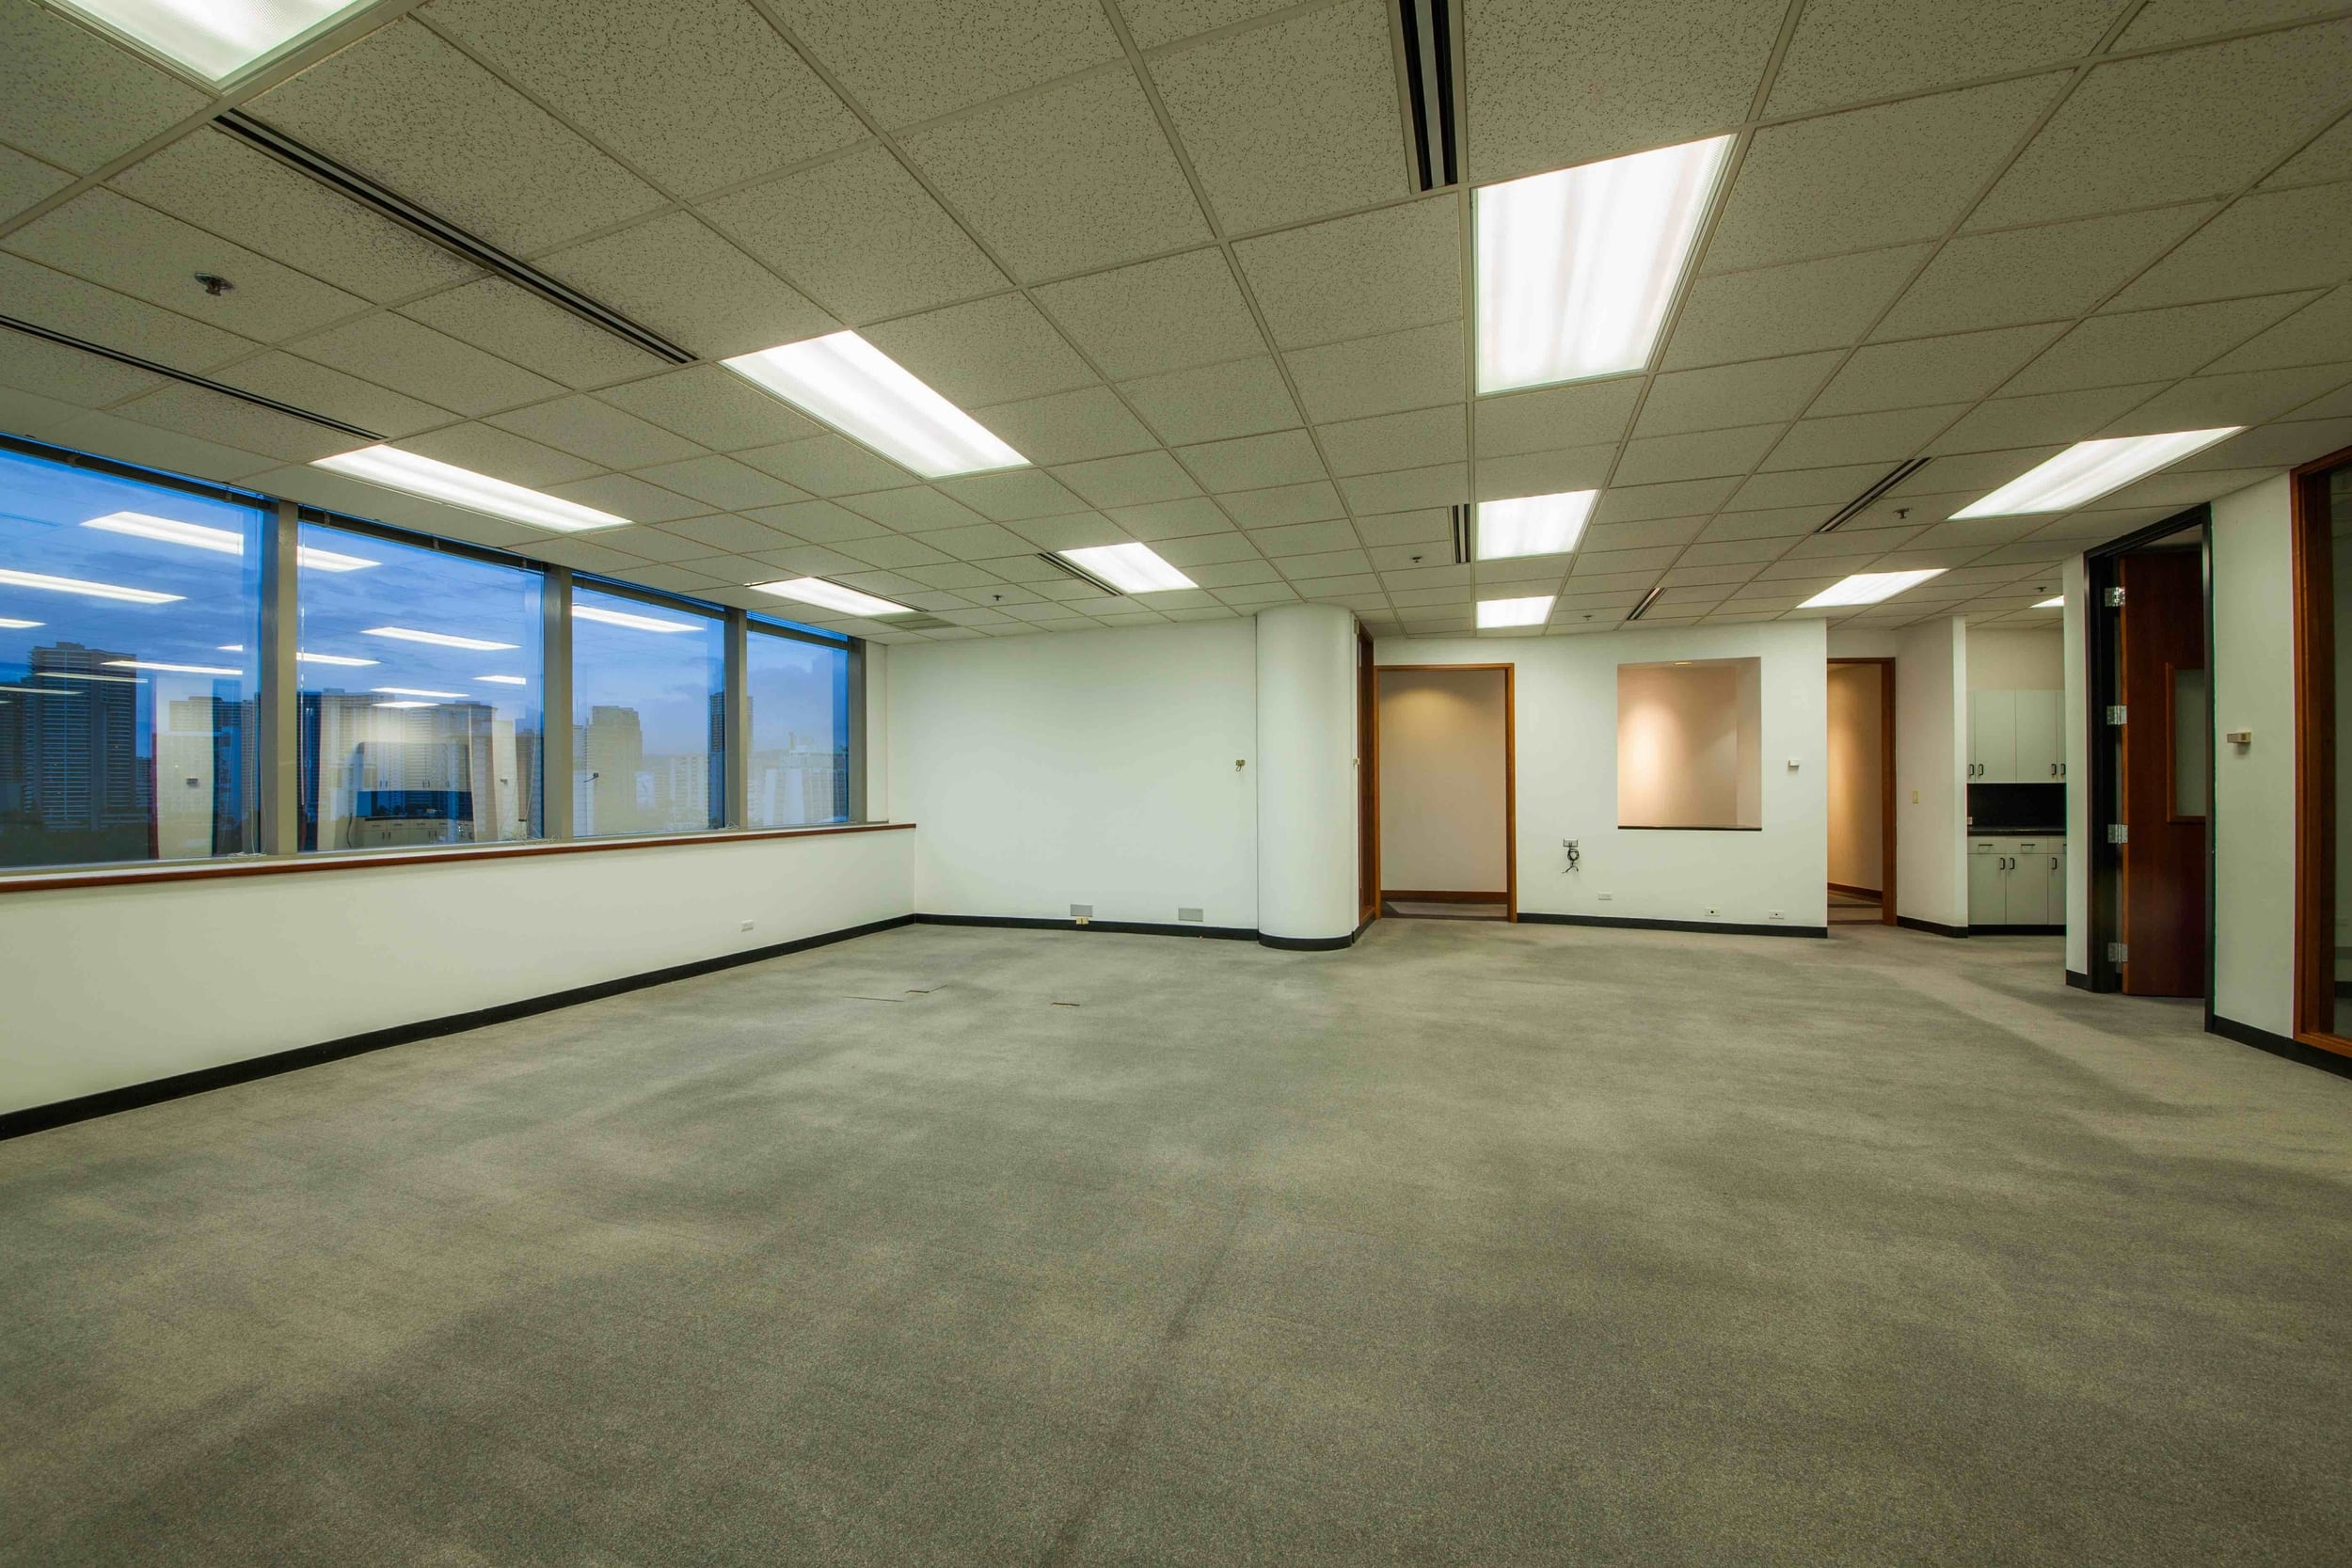 Spacious suite with four private offices. Window views of Waikiki, and the ocean. Kitchen with running water. Ideal office for large company.